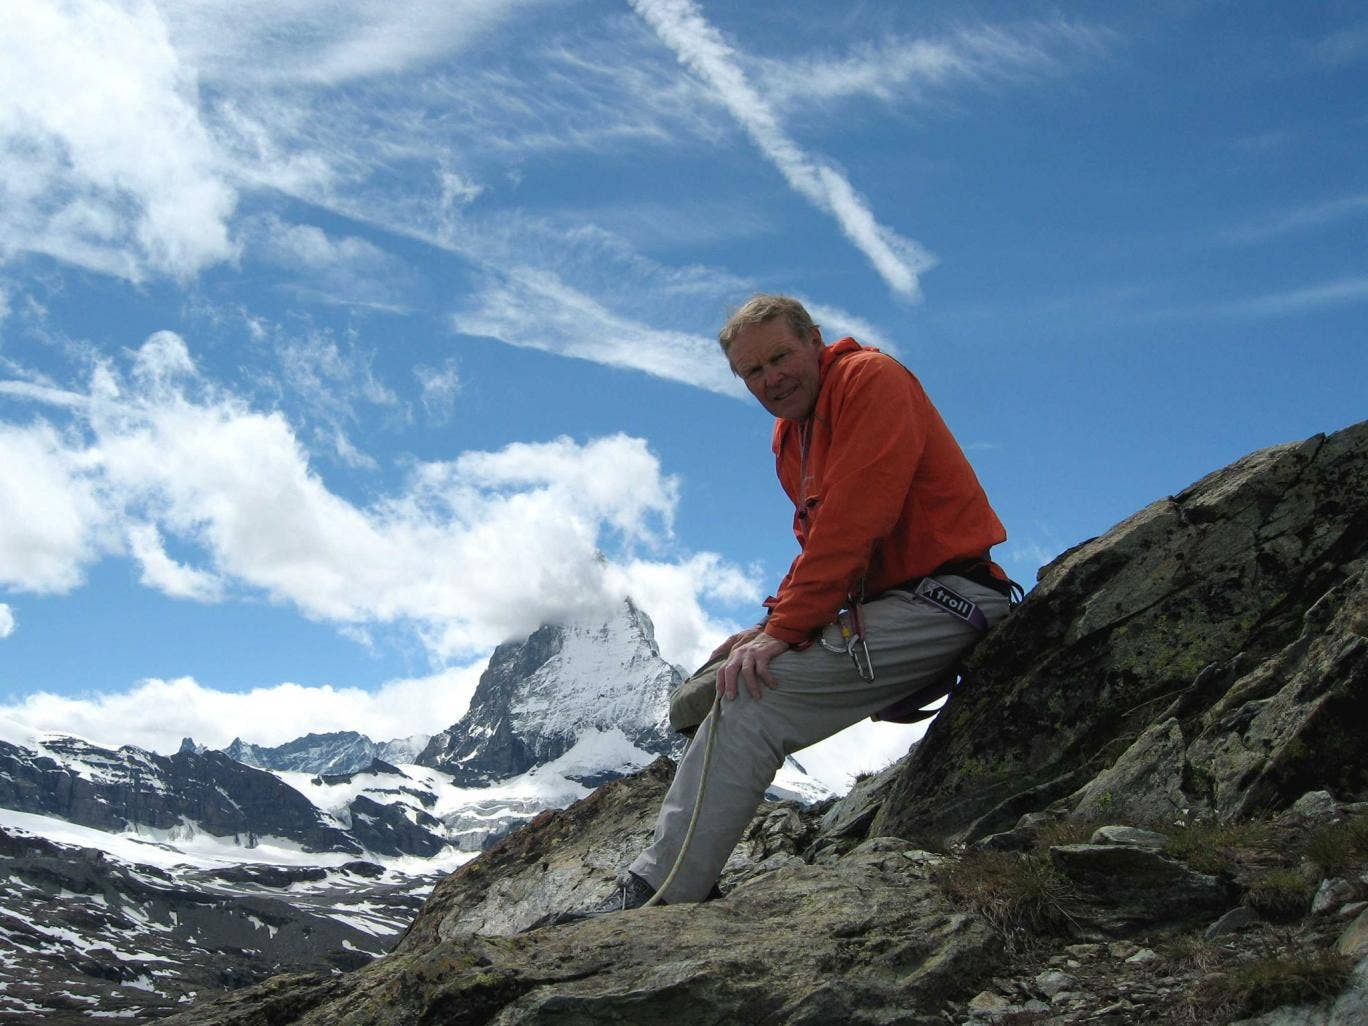 Walker near the Matterhorn in 2007 on the 150th anniversary of the Alpine Club's formation